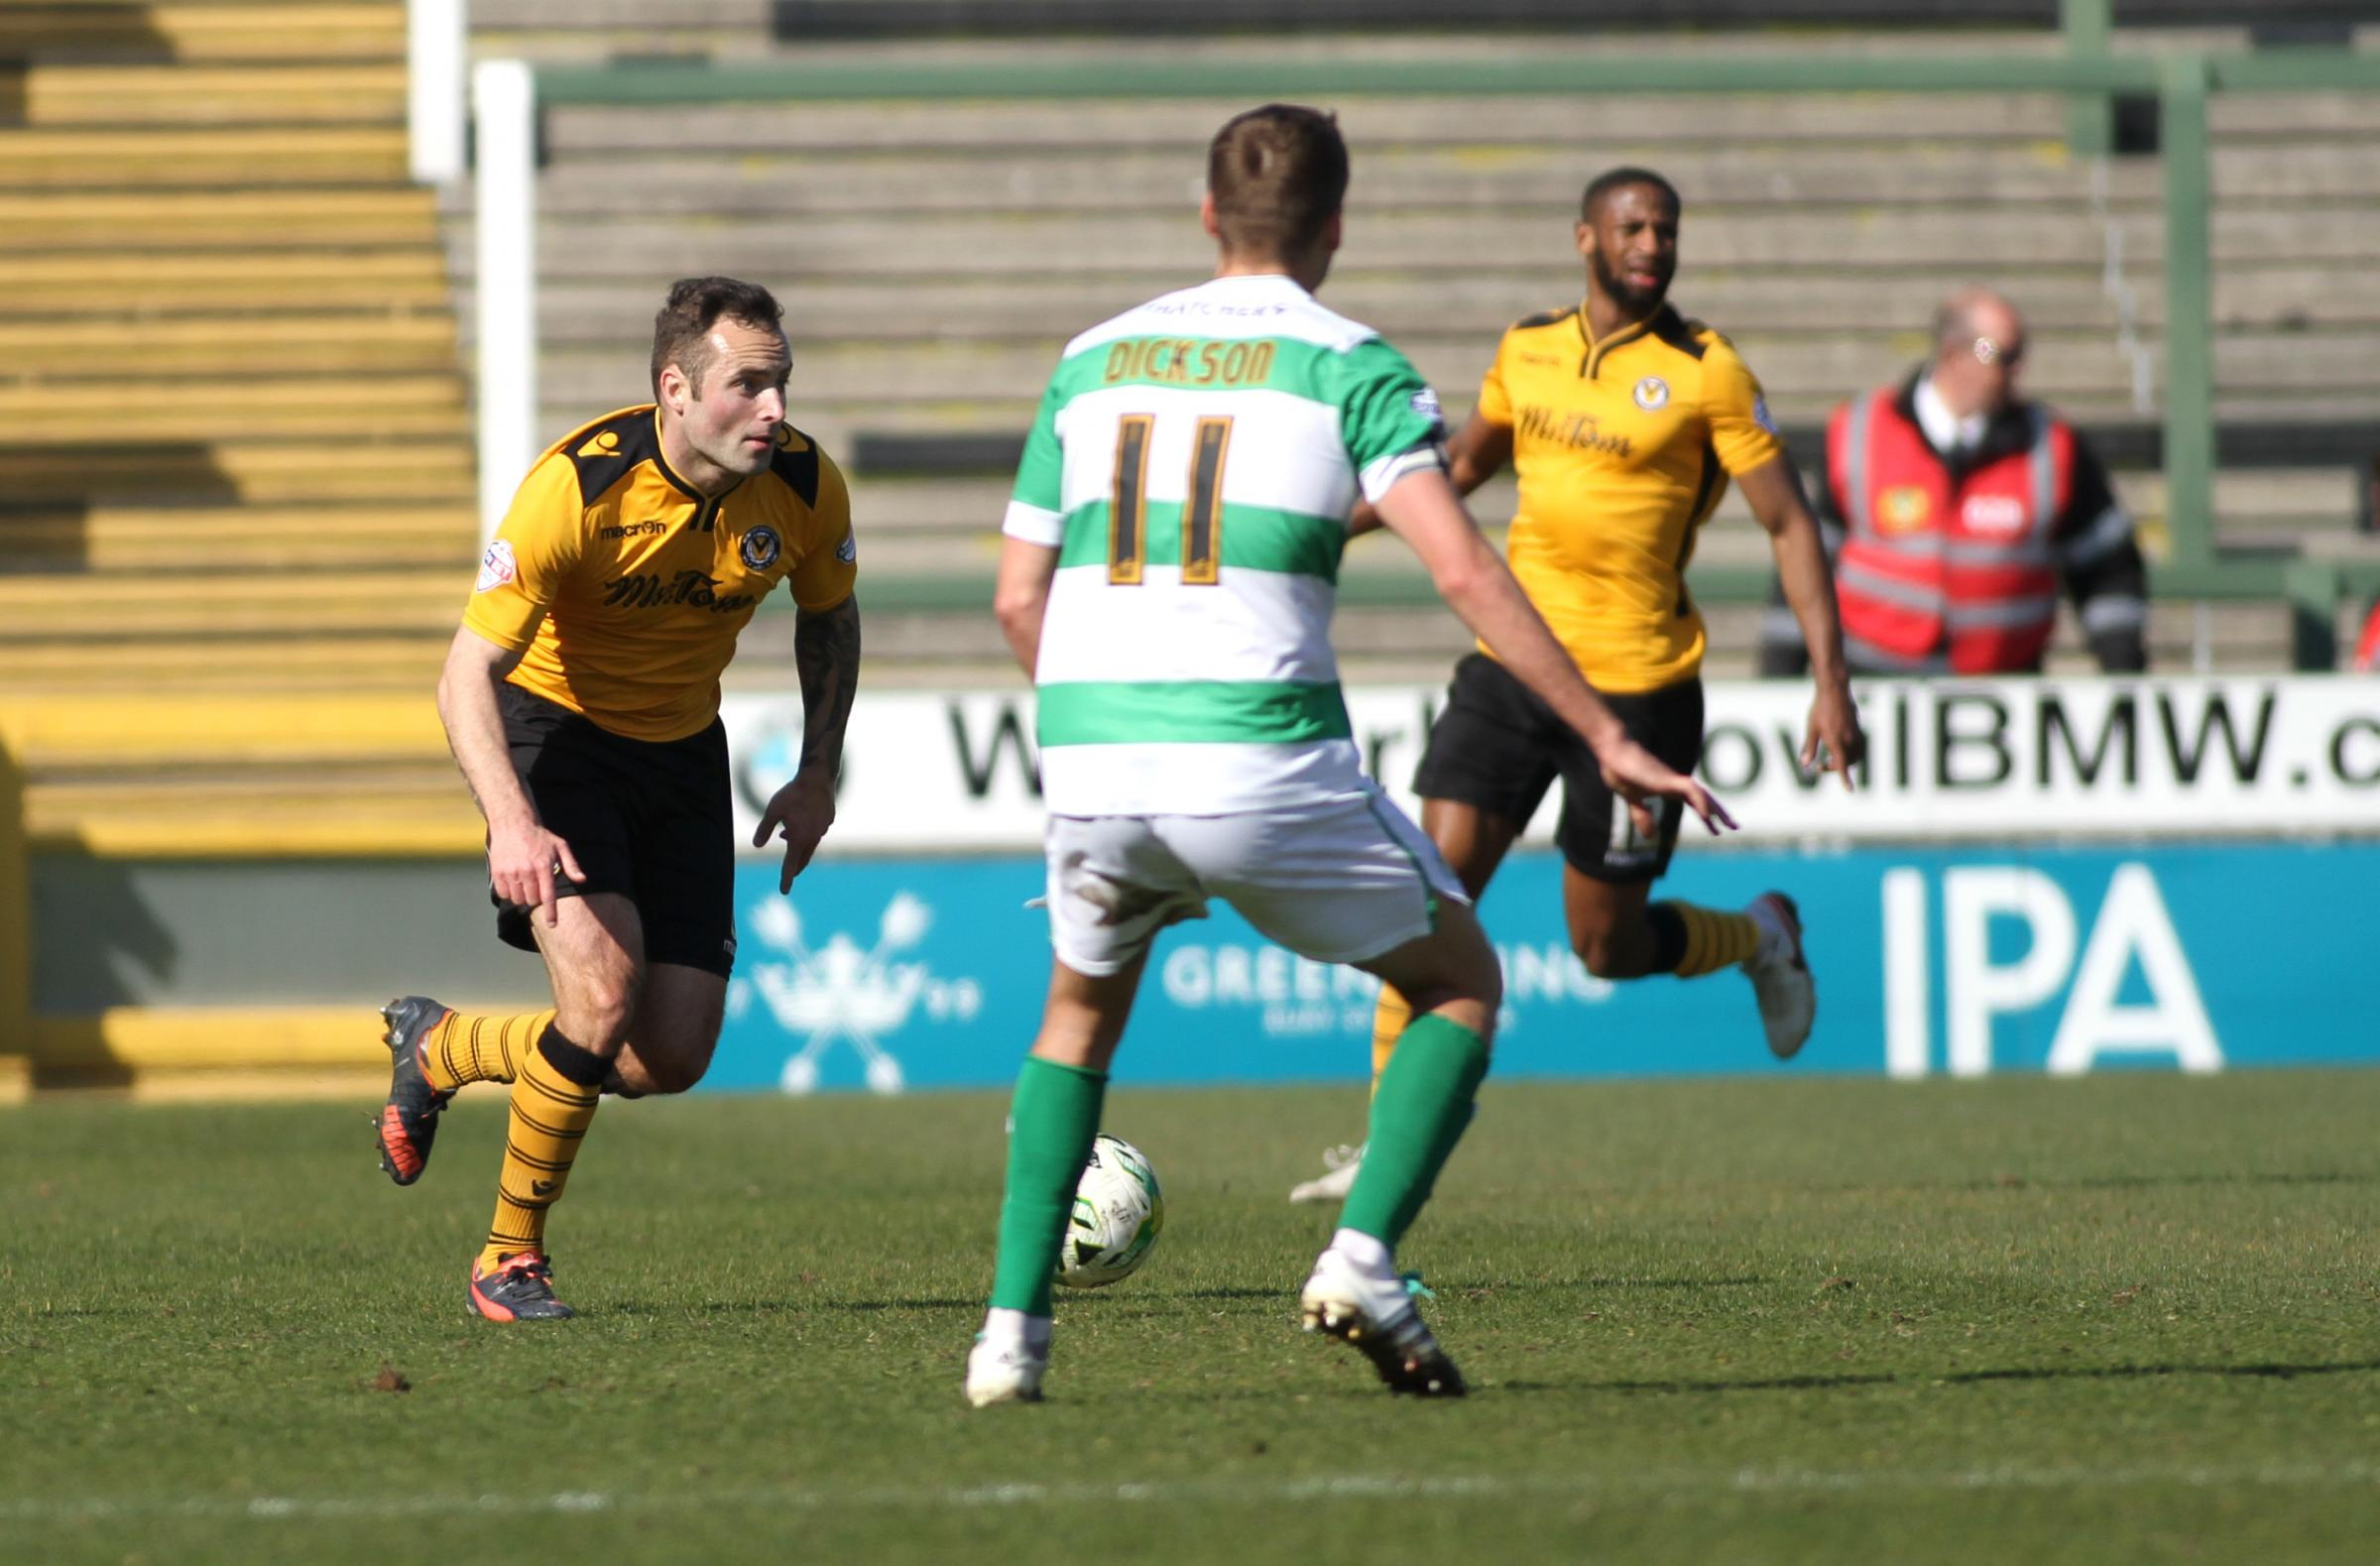 Danny Holmes, playing for Newport County